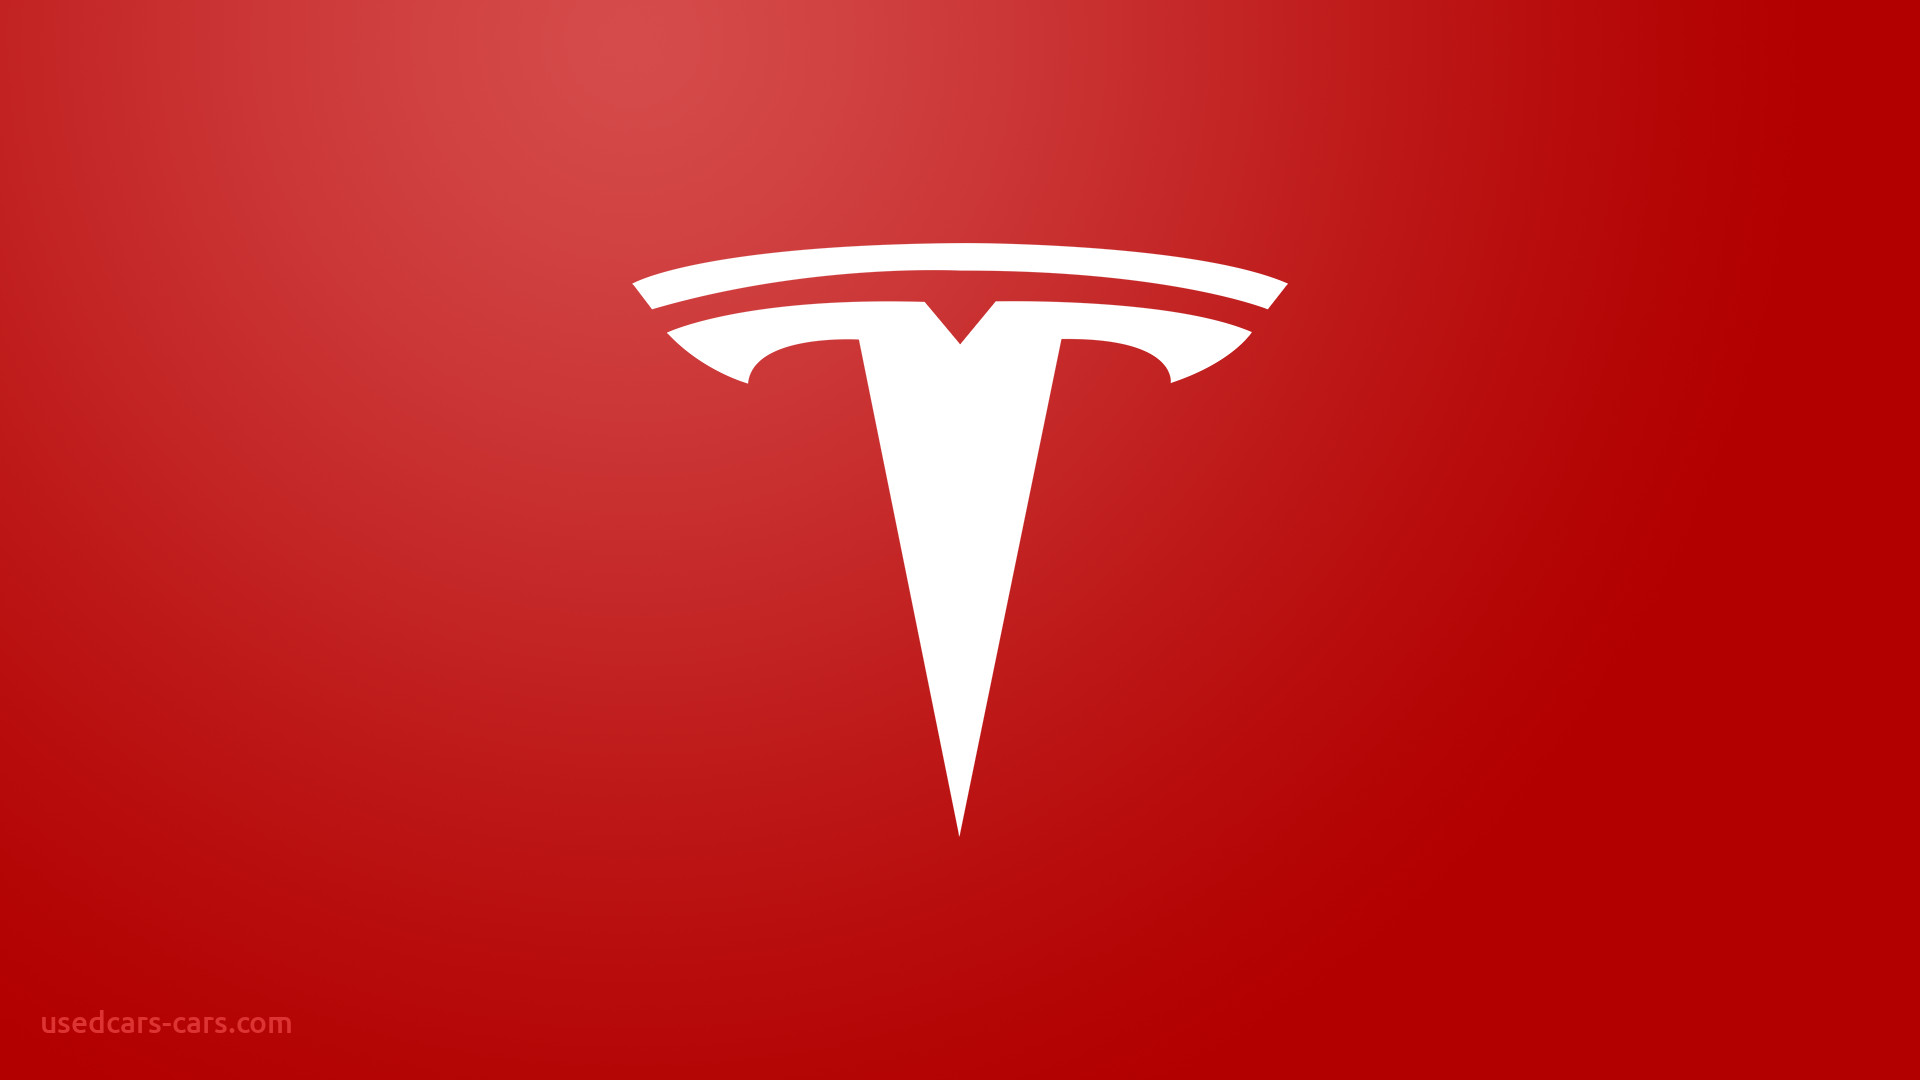 Tesla Logo Wallpaper Lovely Im Making A Lot Of Tesla Logos for Fun What Do You Guys